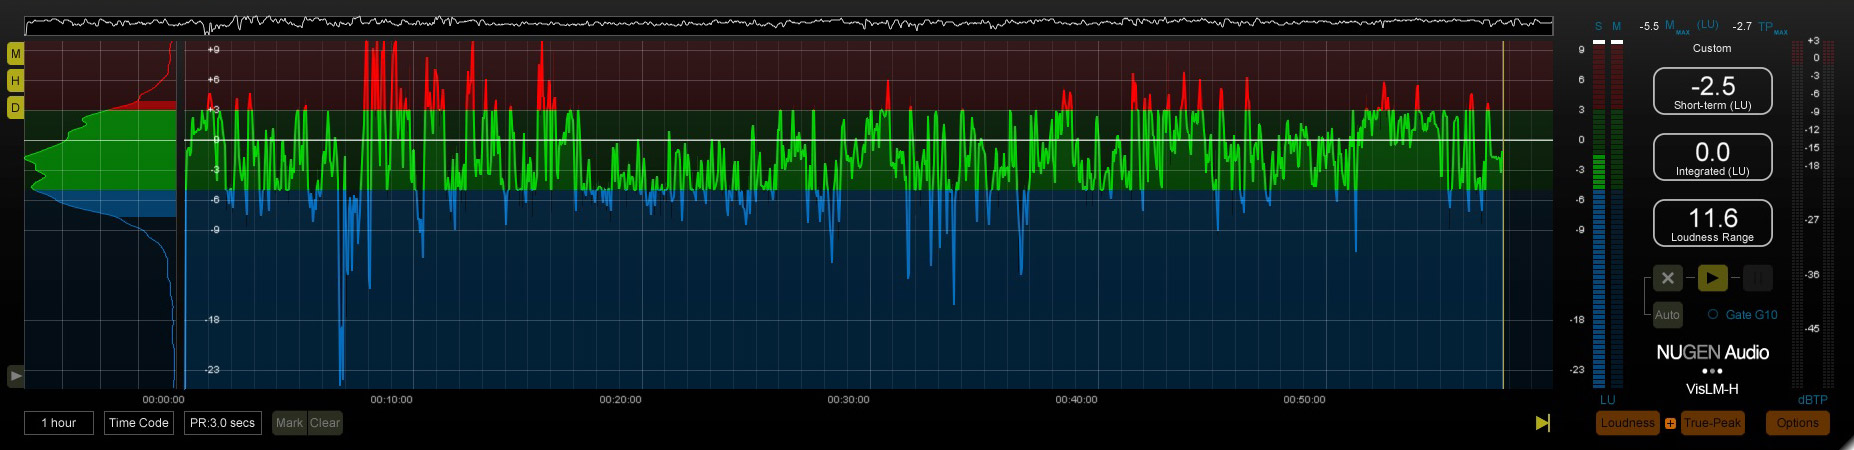 The Grand Tour Ep 2 Loudness Plot for the full program - Click image to see a larger version